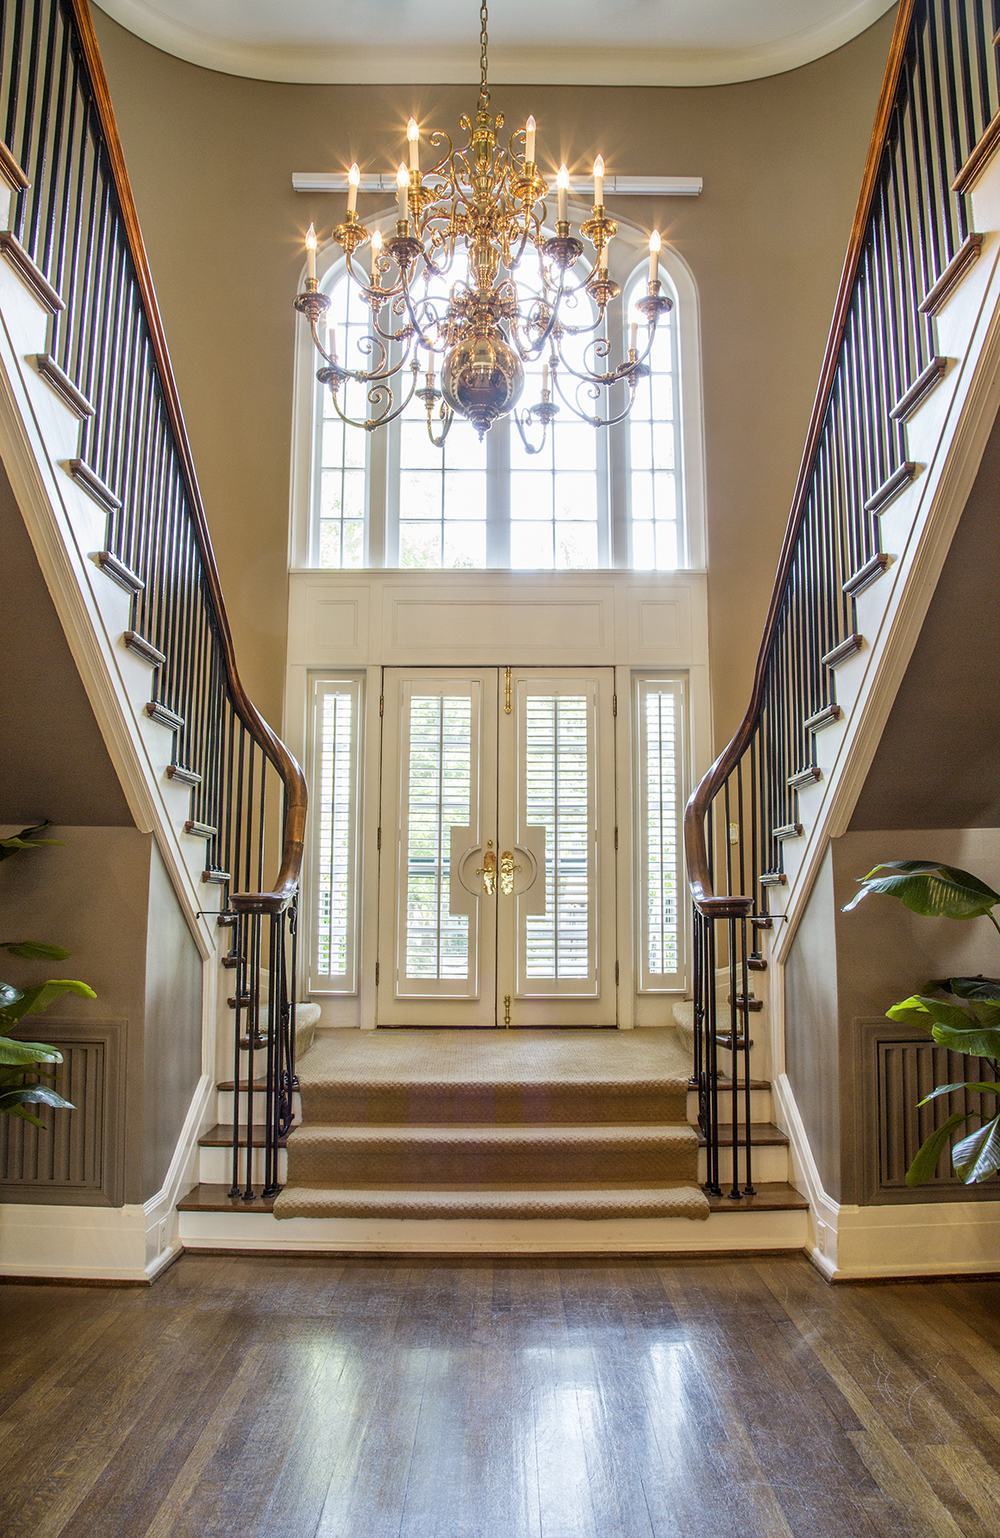 A Goldsboro artisan  hand-carved the curved wooden banister rail on the double staircase, a feature proposed by wife of the original owner  Mrs. Dail.